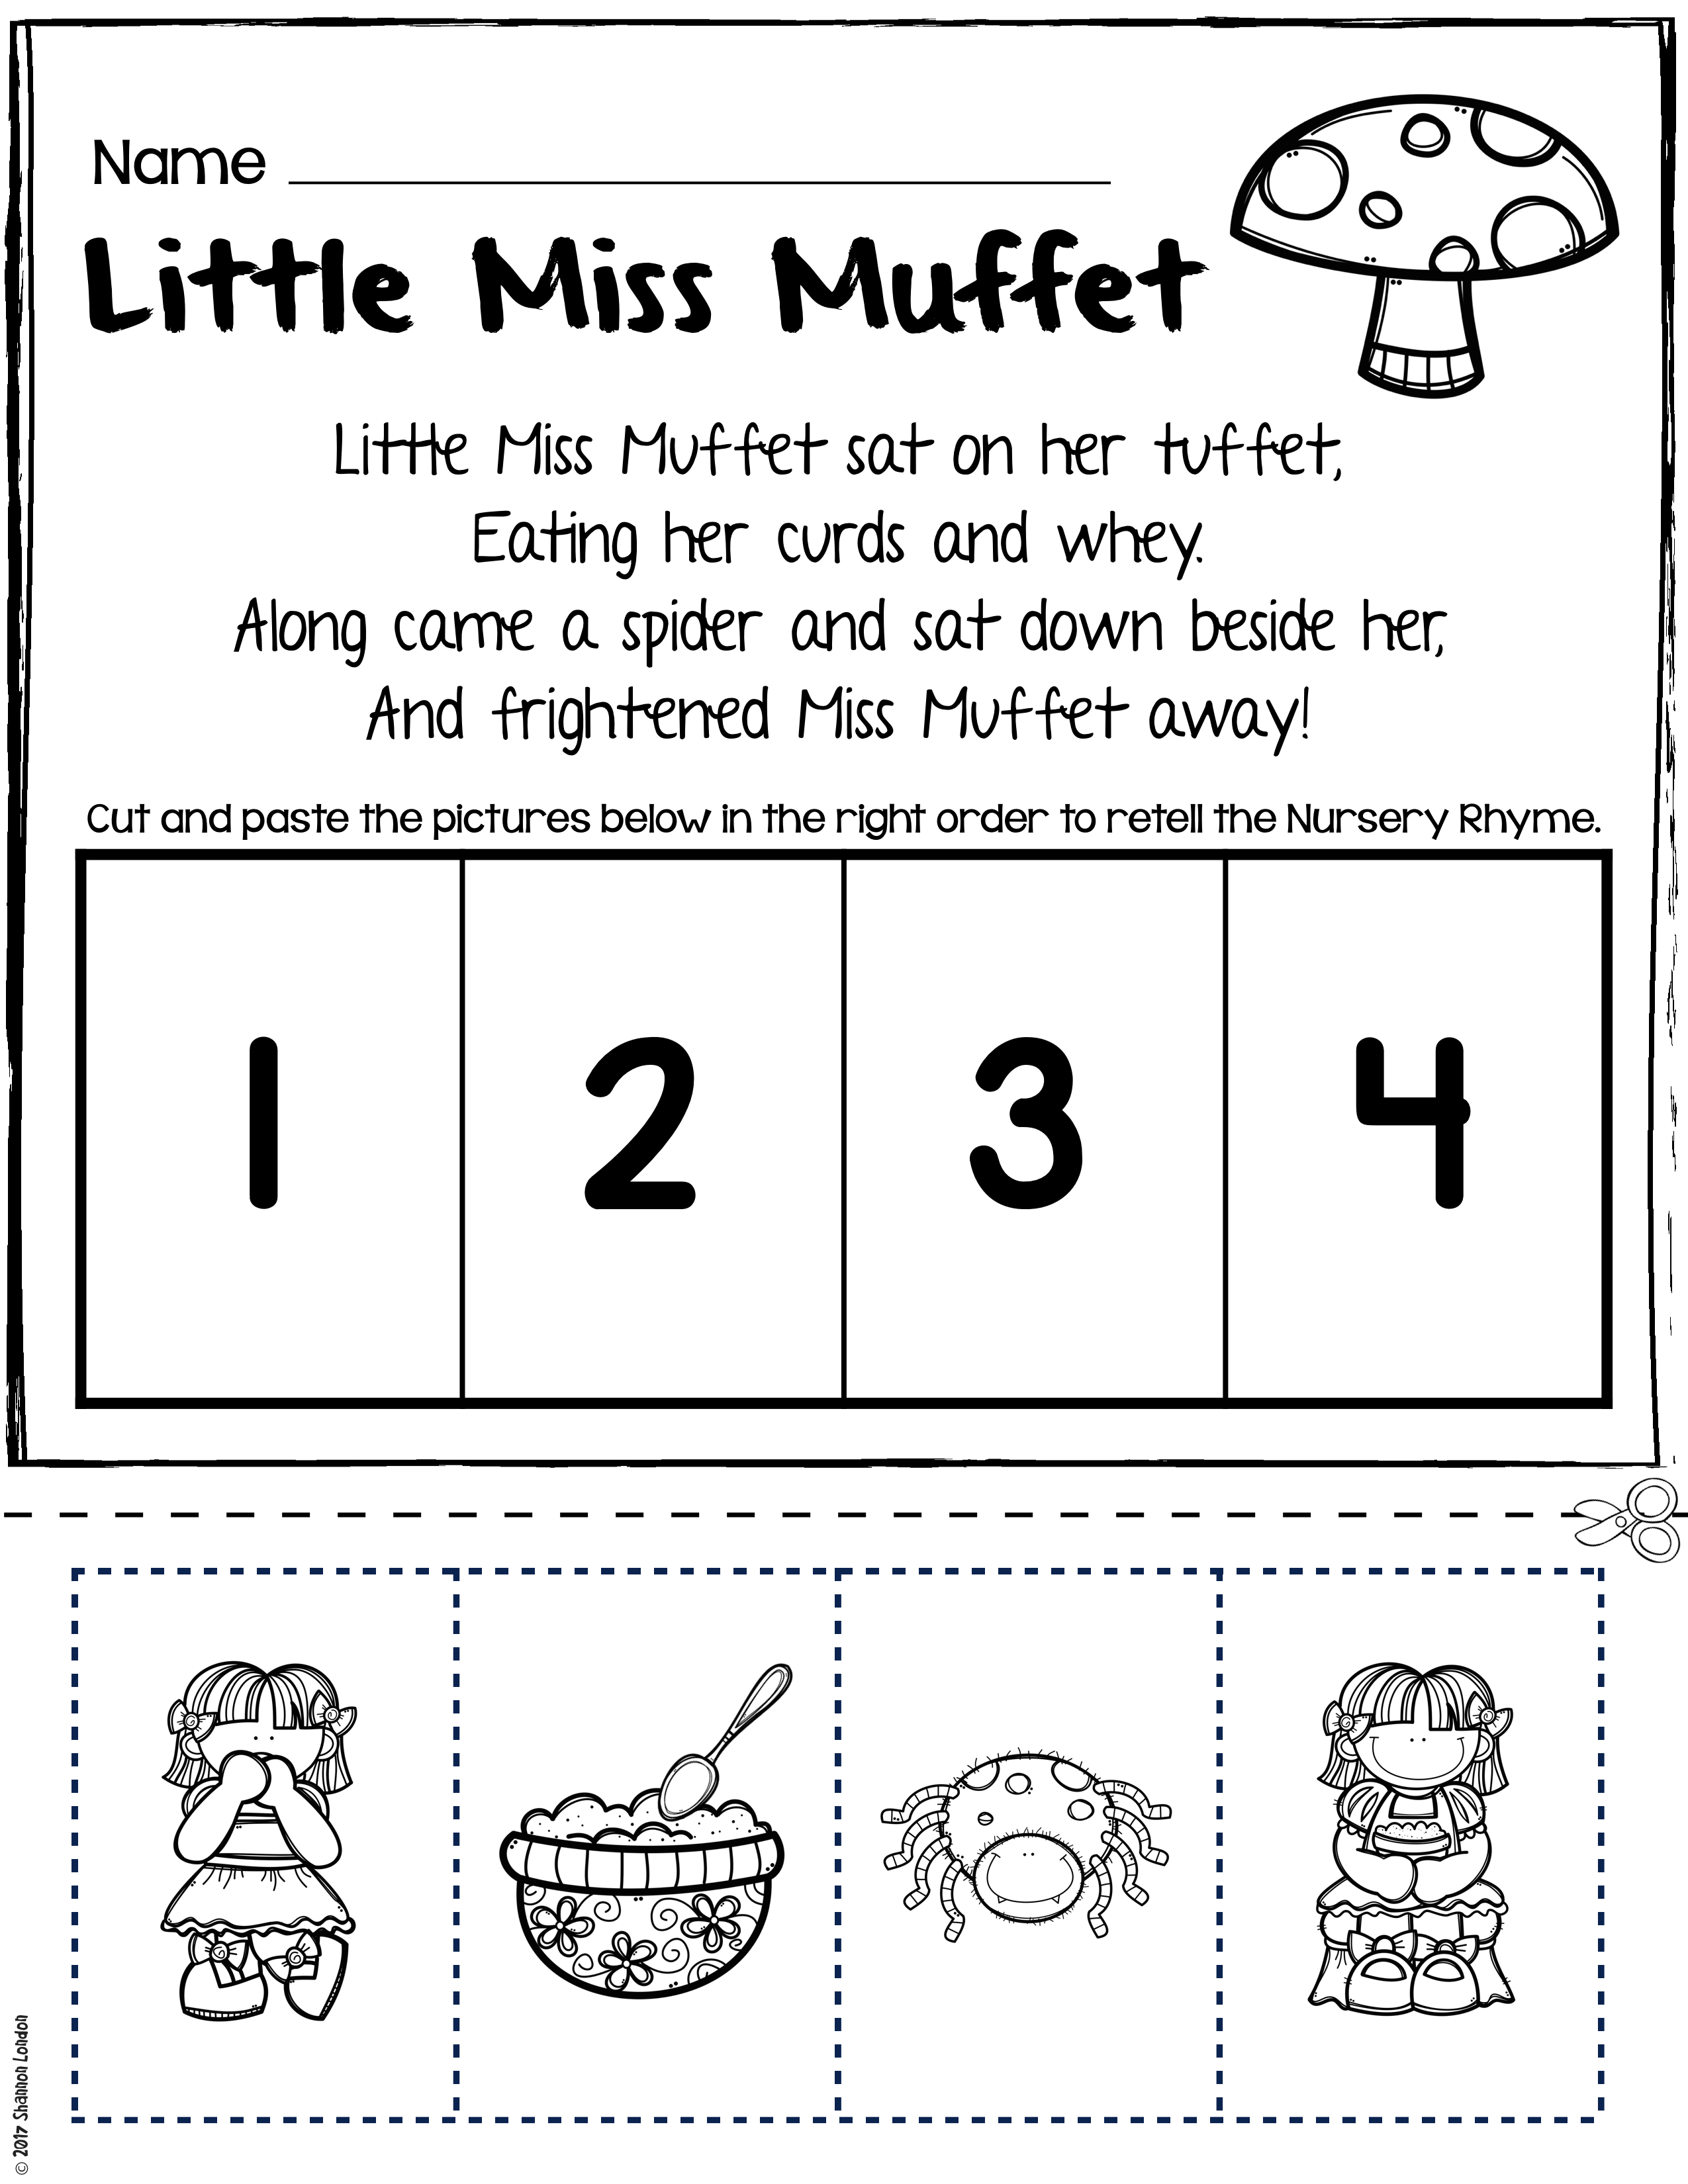 It's just a graphic of Current Printable Nursery Rhyme